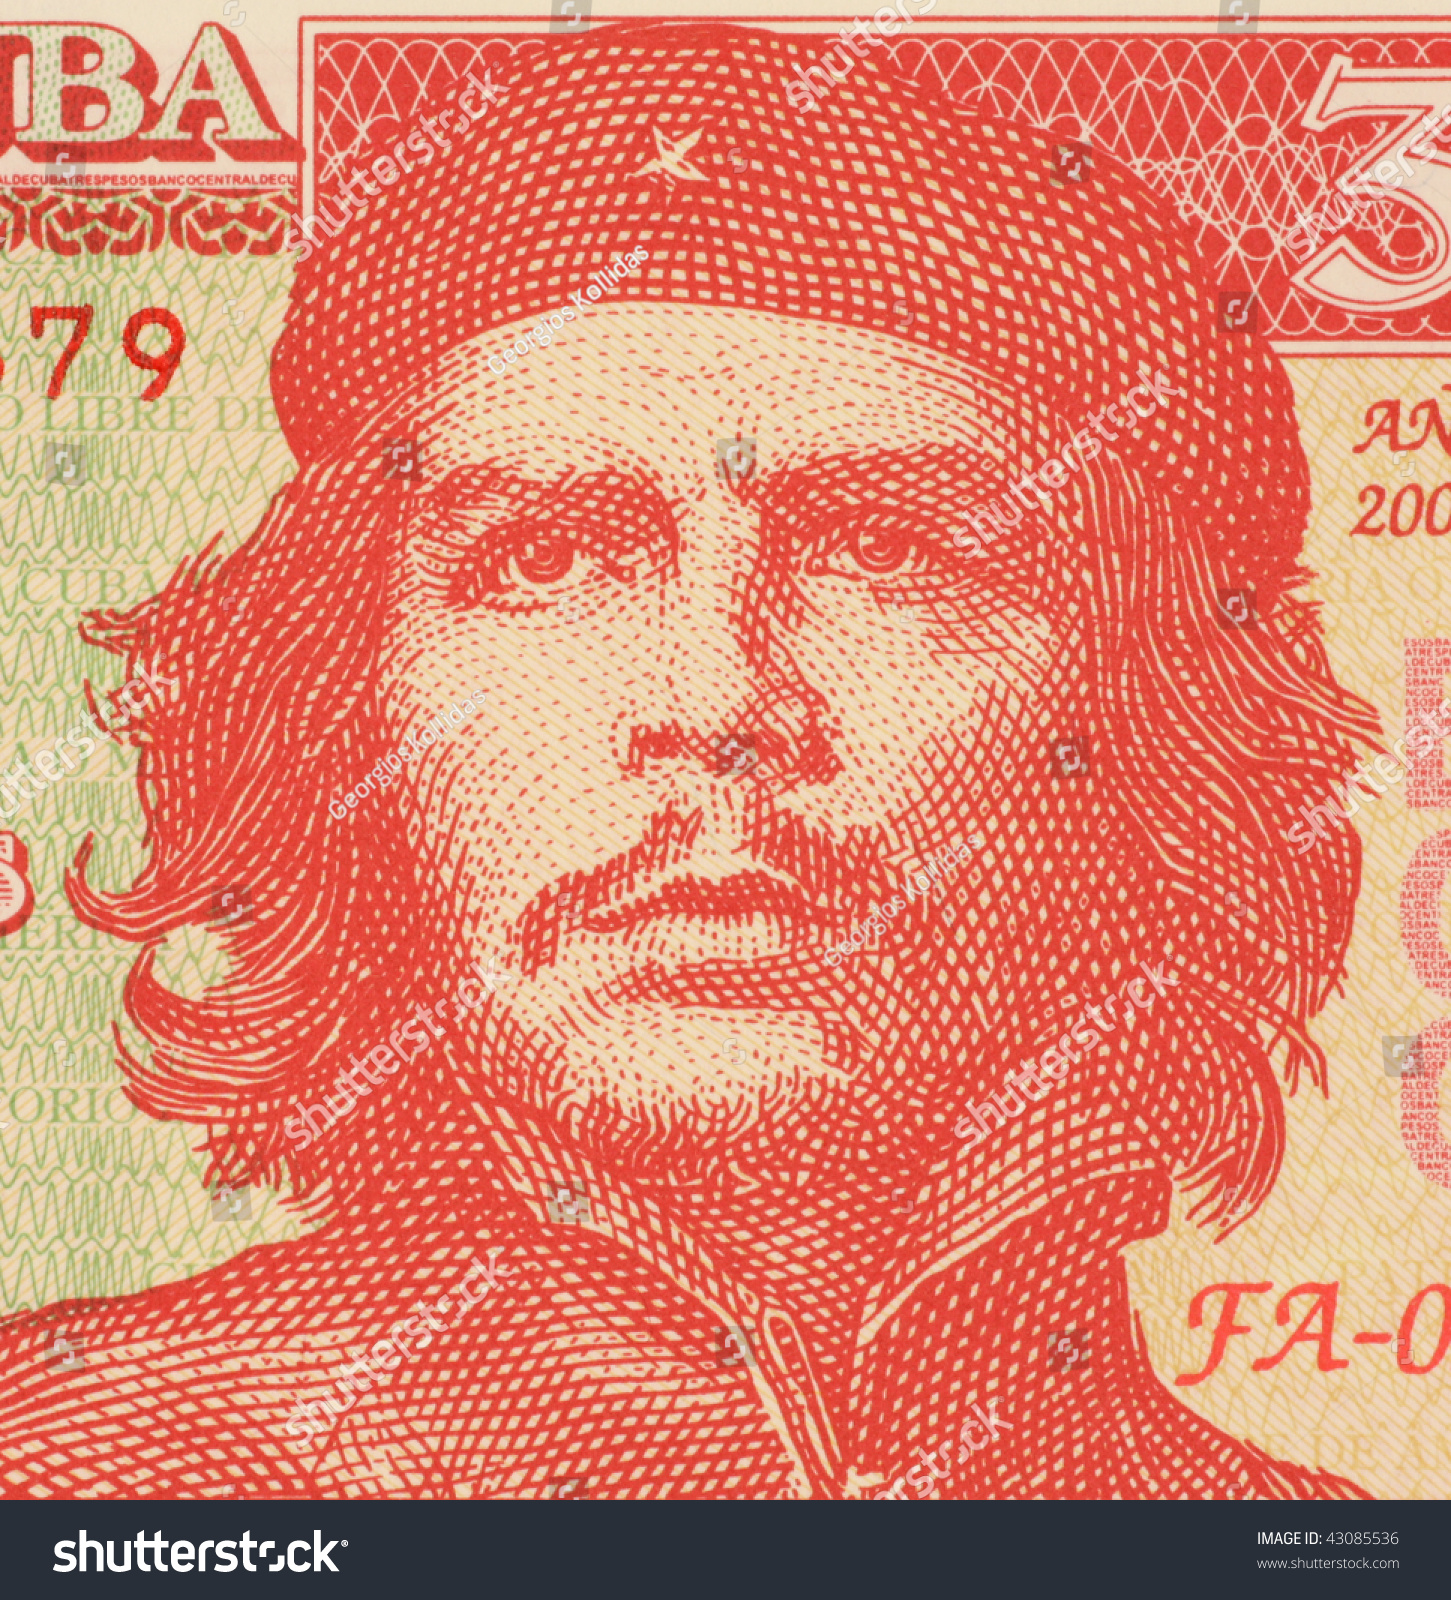 ernesto guevara iconic status essay Appearances of argentine marxist revolutionary che guevara (1928–1967) in popular culture are common throughout the world although during his lifetime.